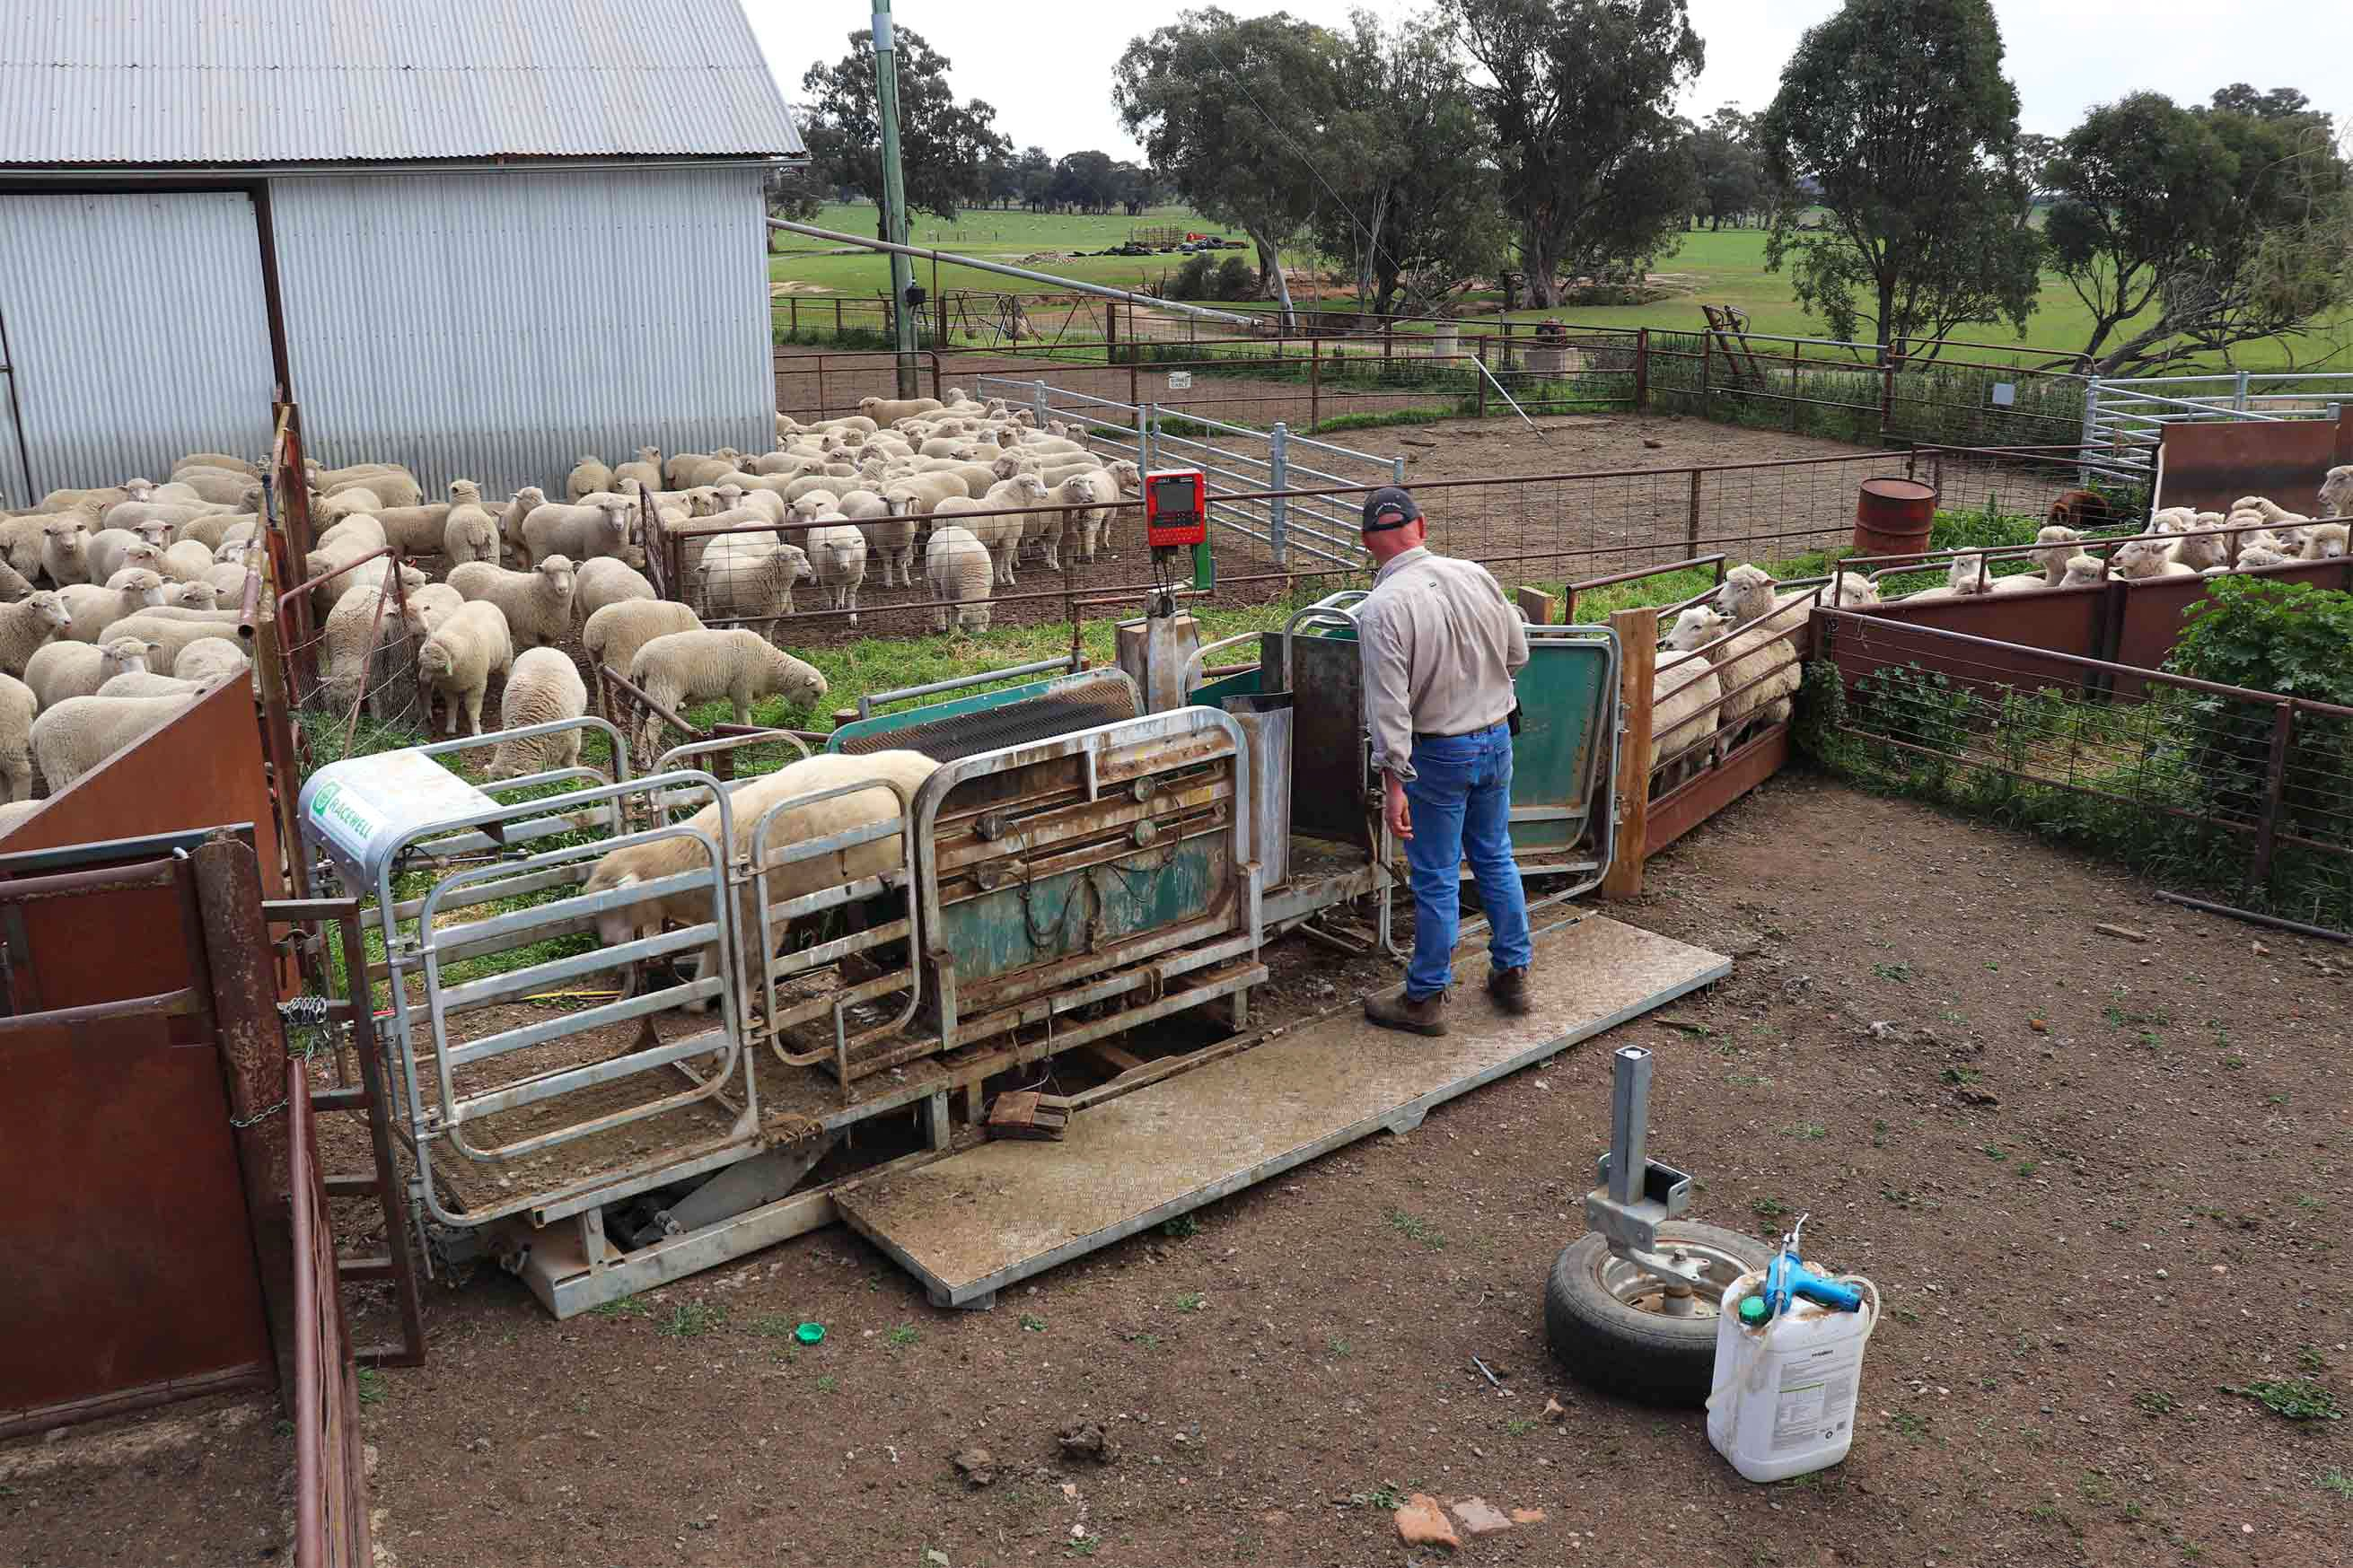 peter mcclintocks racewell sheep handler and dosing gun setup in his pro way sheep yards 2